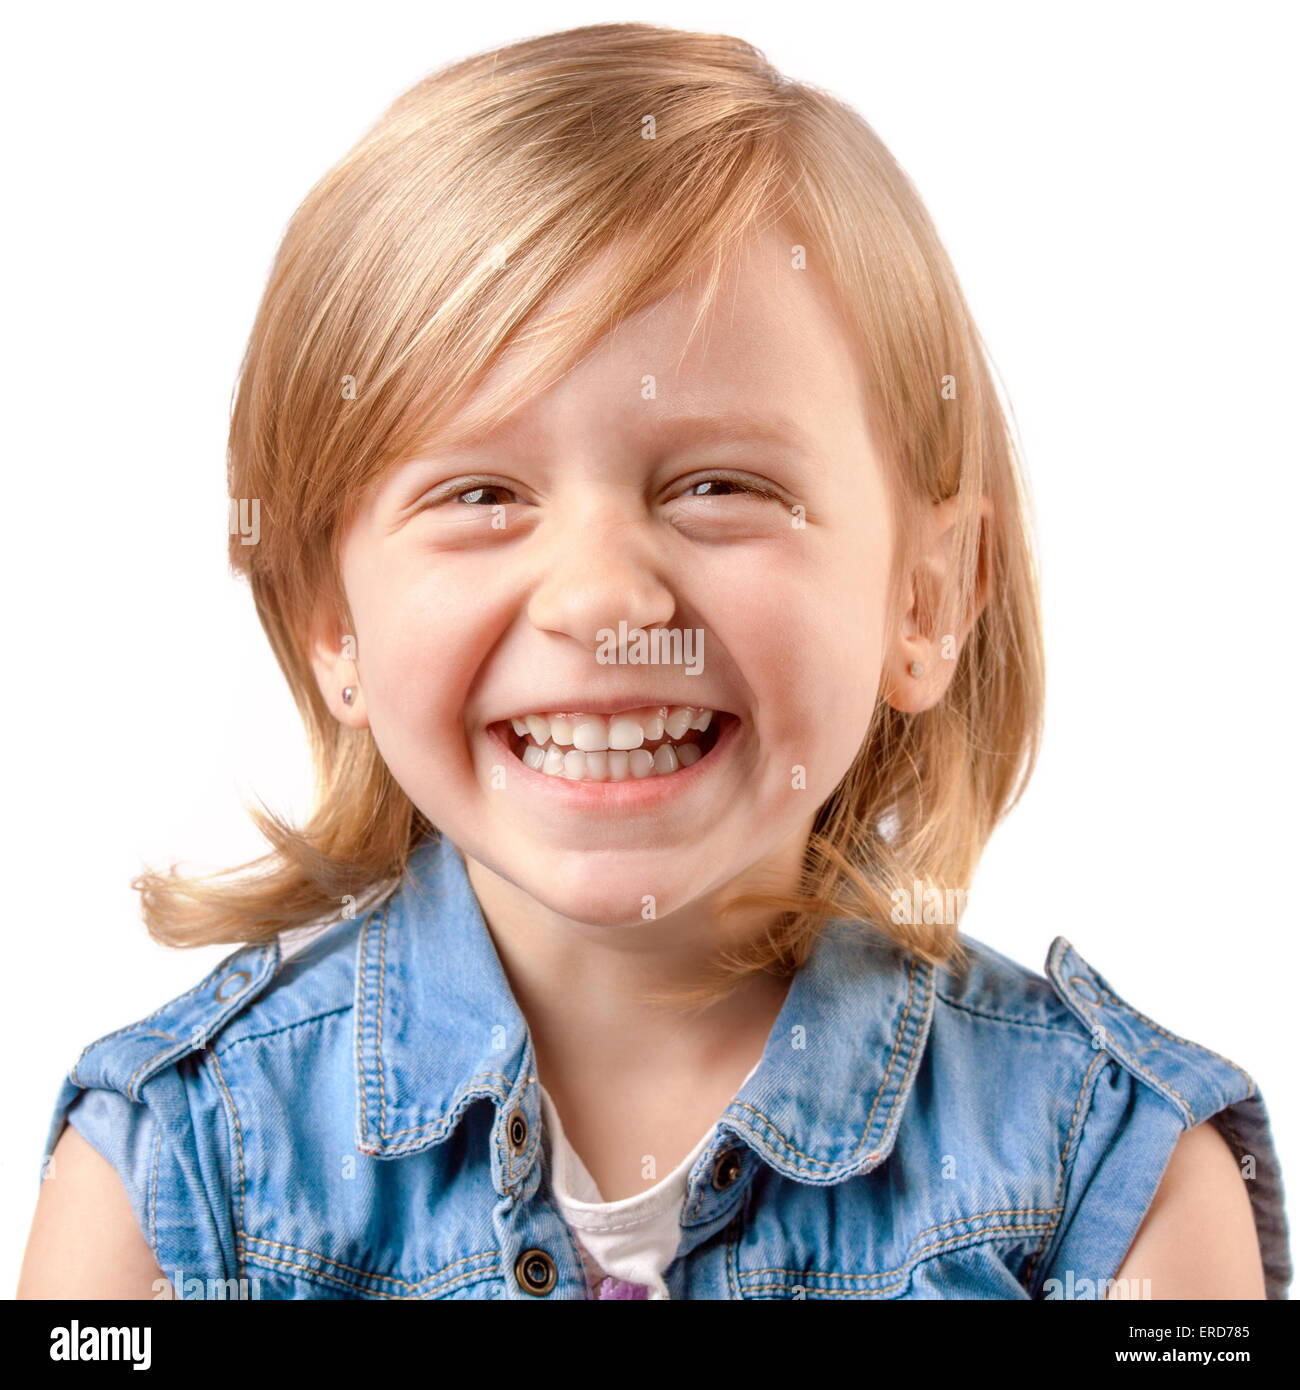 Cute happy girl laughing and having fun - Stock Image